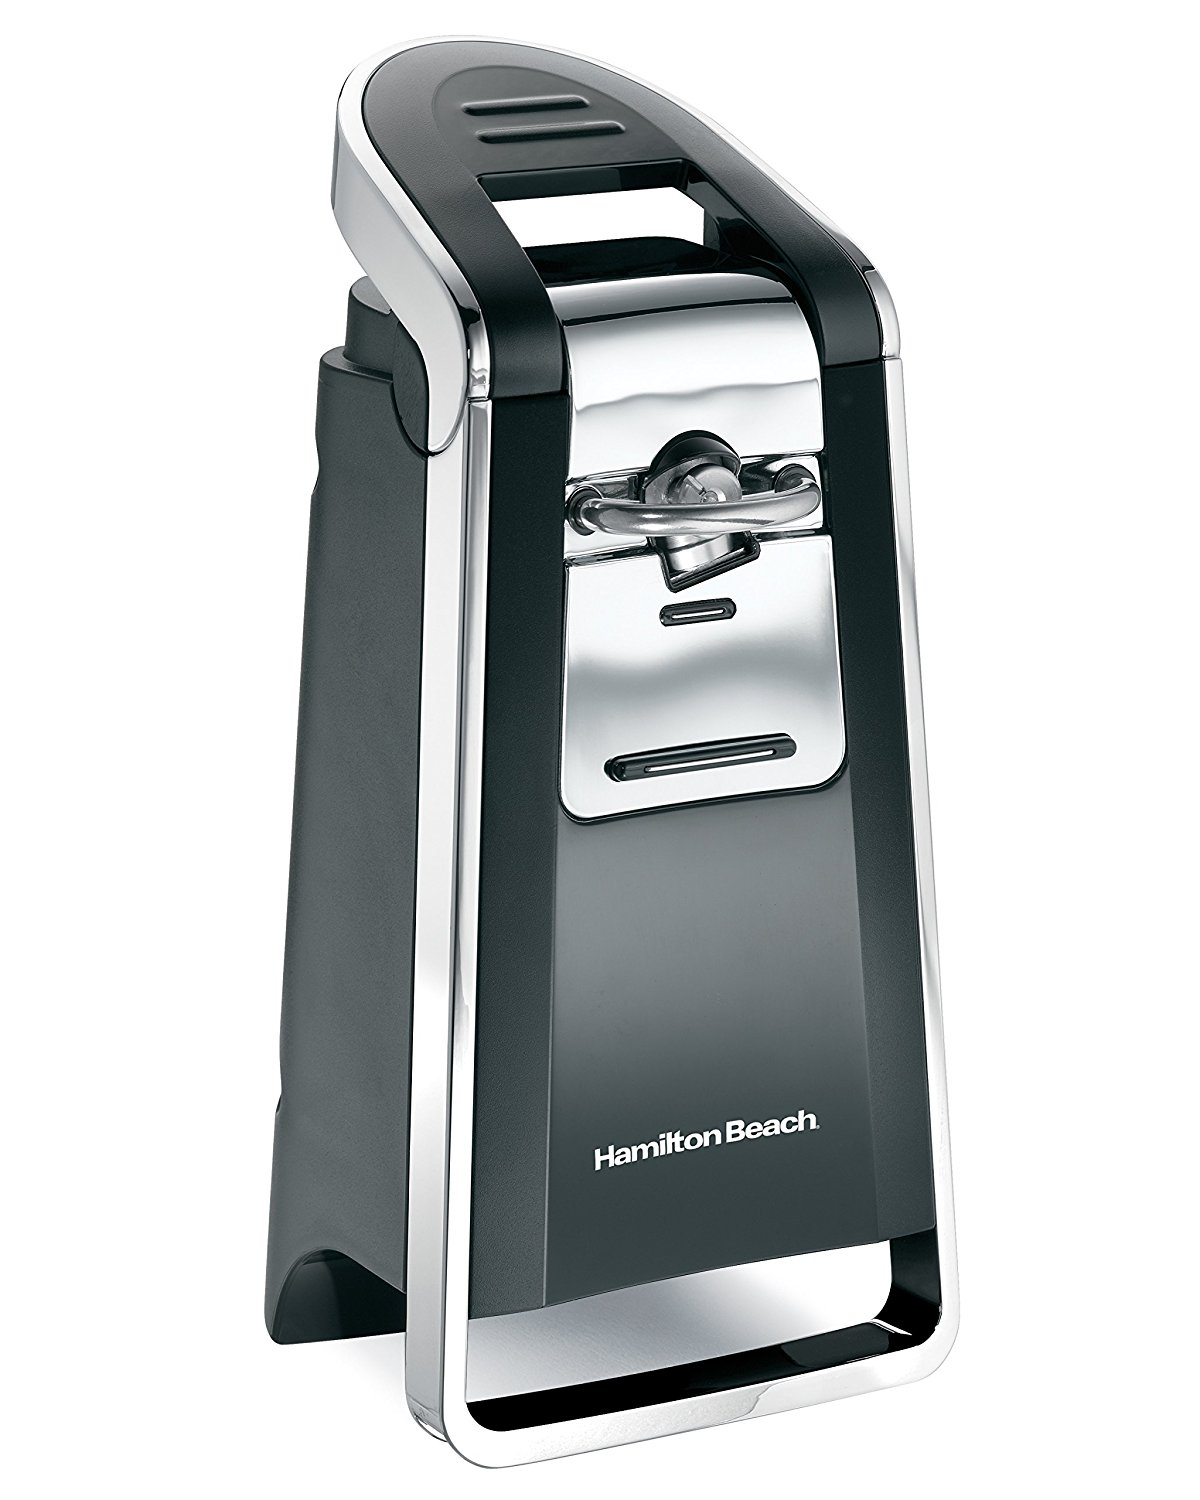 Hamilton Beach Smooth Touch 76606Z Can Opener, Black, and Chrome